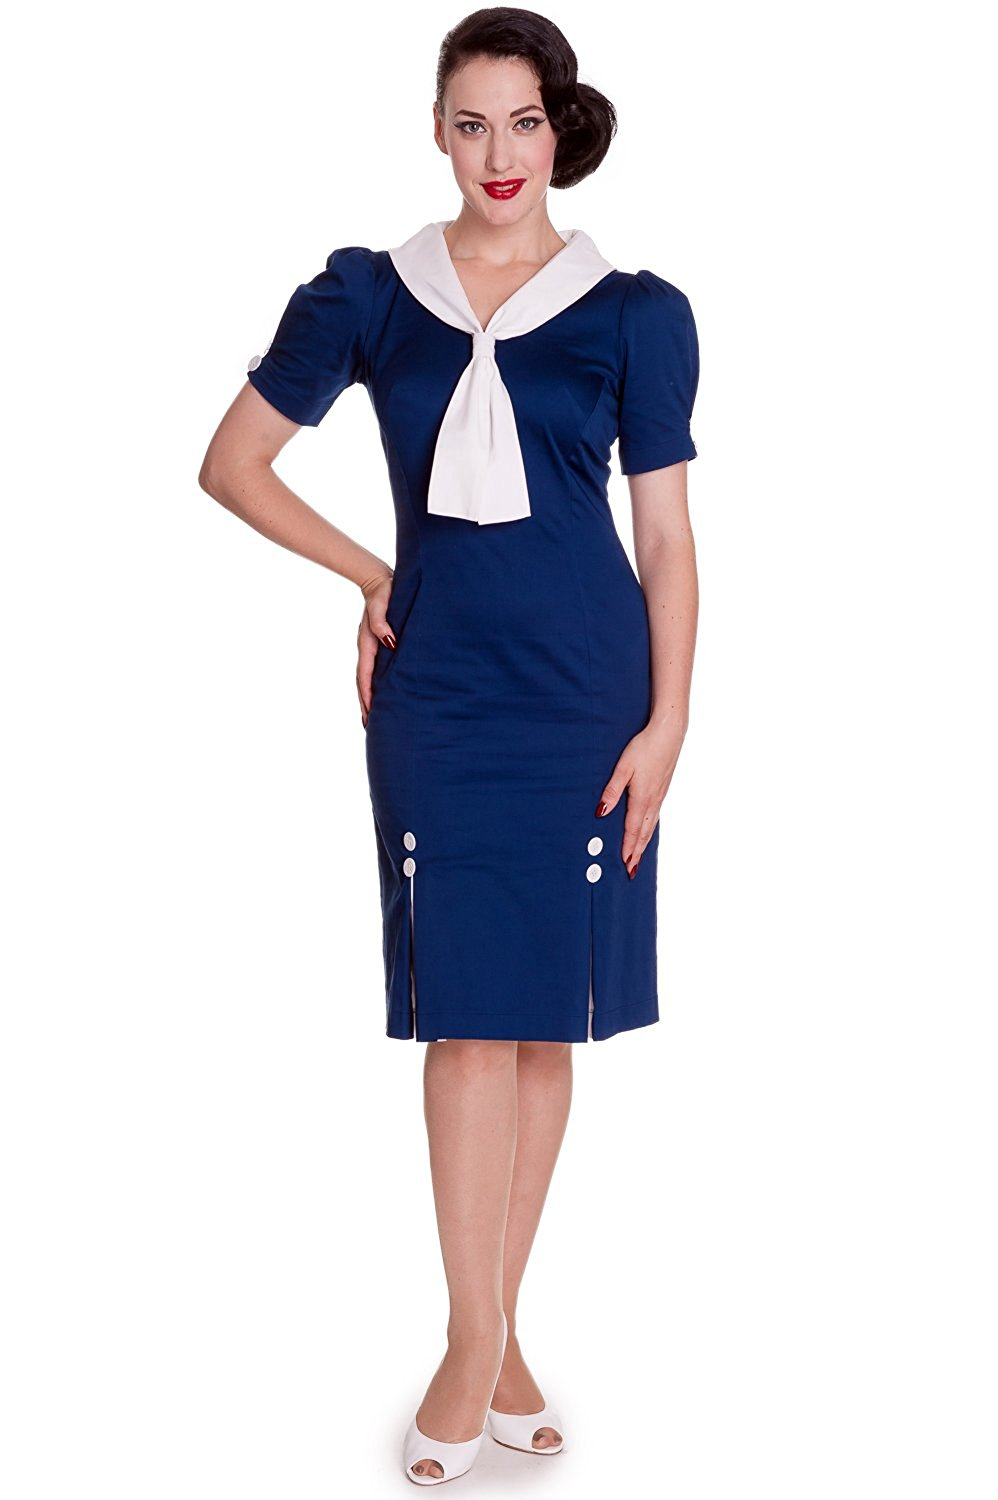 37f51424448 Get Quotations · Hell Bunny 60 s Ahoy Pinup Sailor Navy Blue Pencil Dress  with Sailor Tie